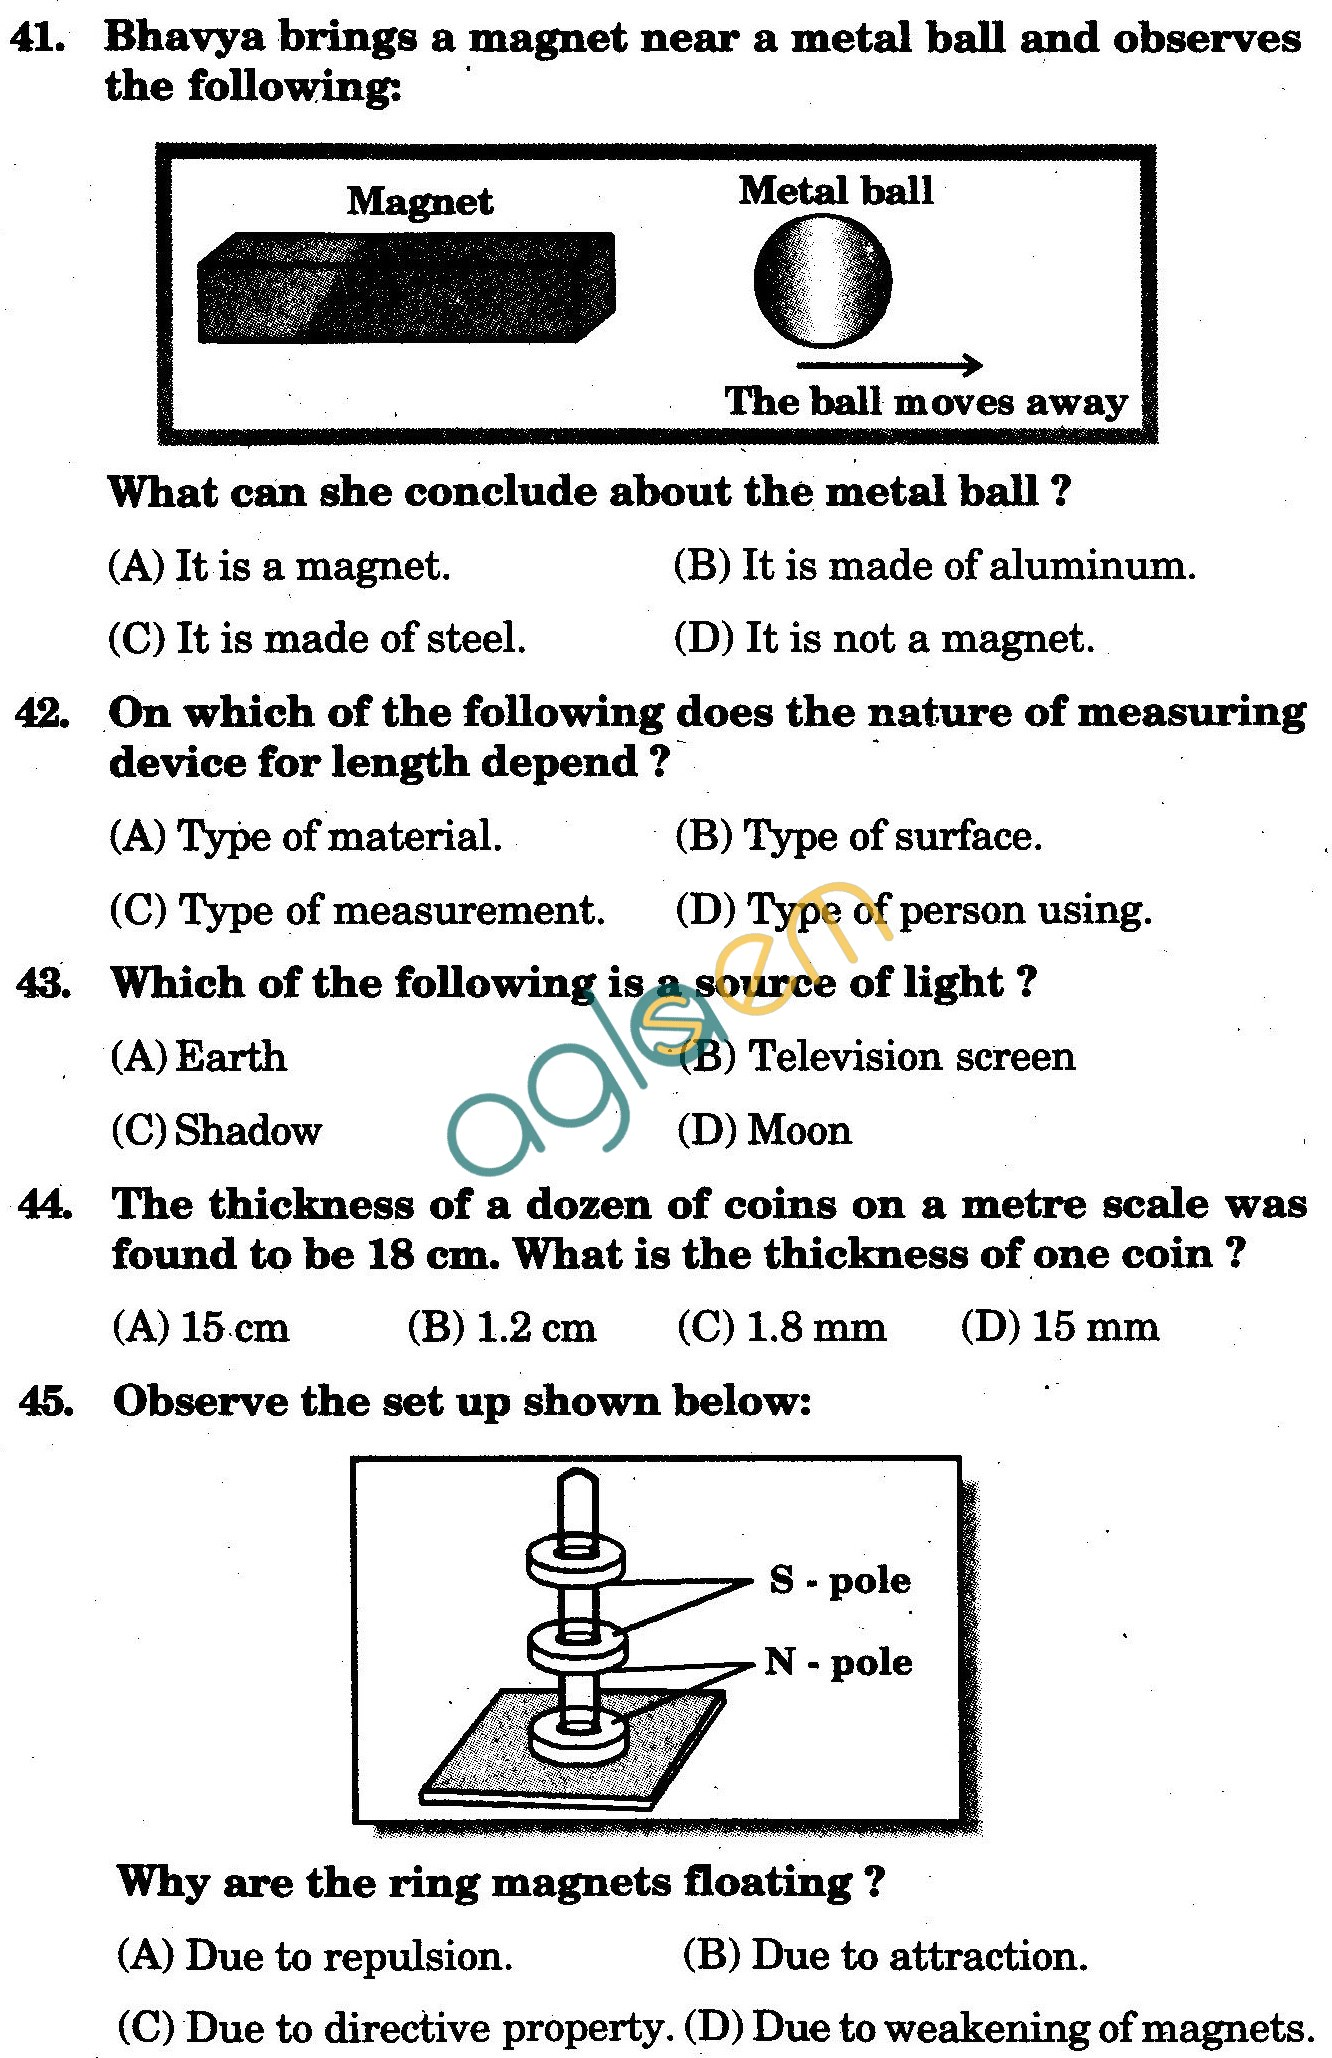 NSTSE 2010: Class VI Question Paper with Answers - Physics